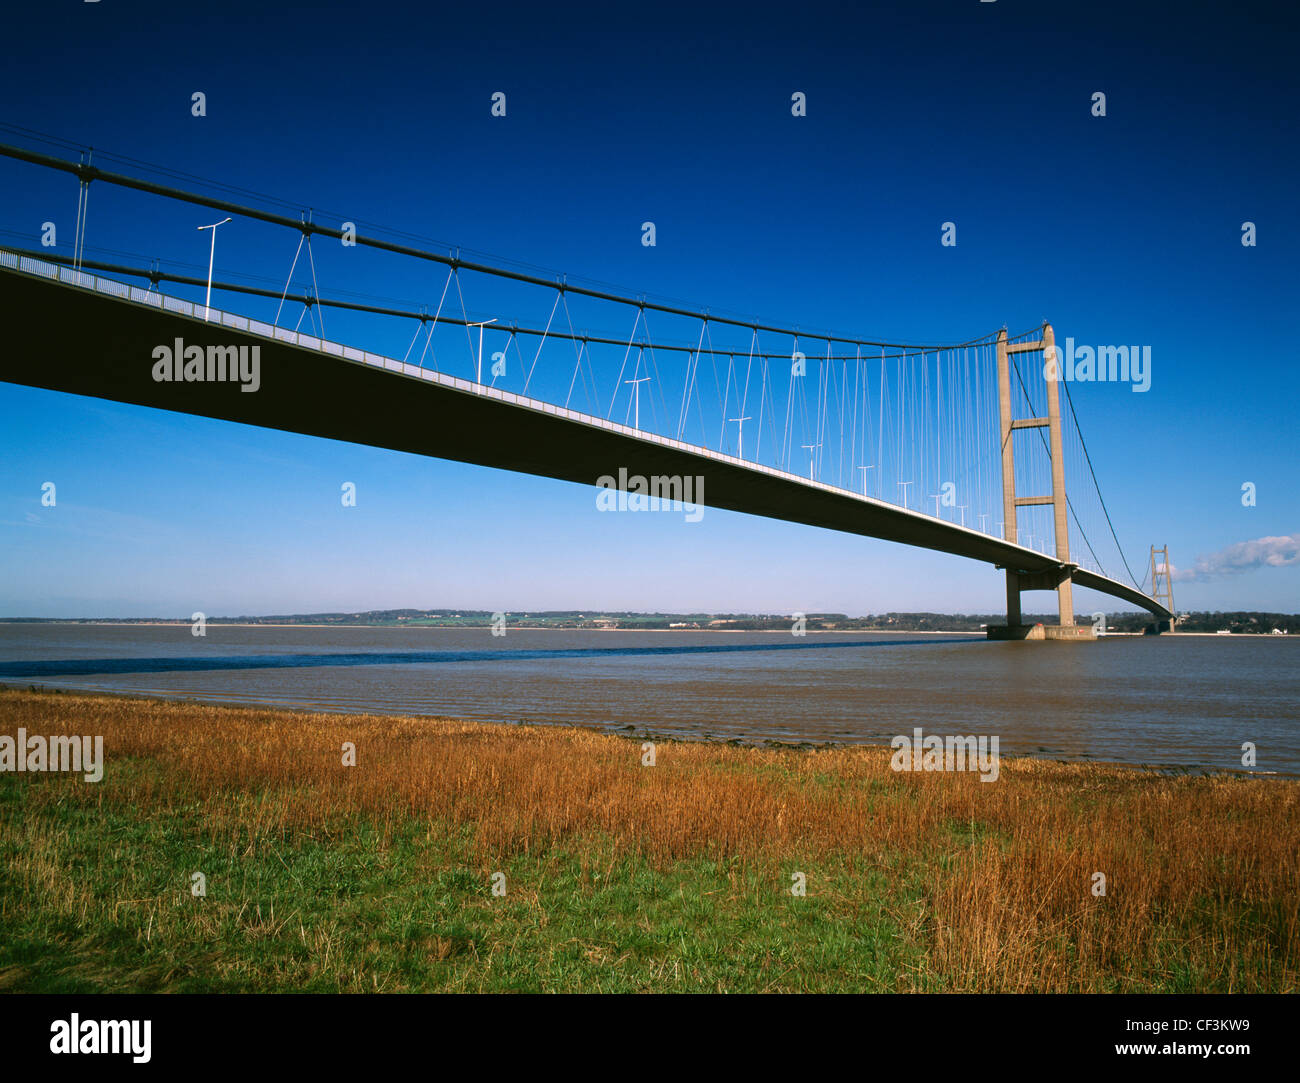 The Humber Bridge from the shore at Barton-upon-Humber crossing the Humber estuary to Hessle in East Yorkshire. - Stock Image